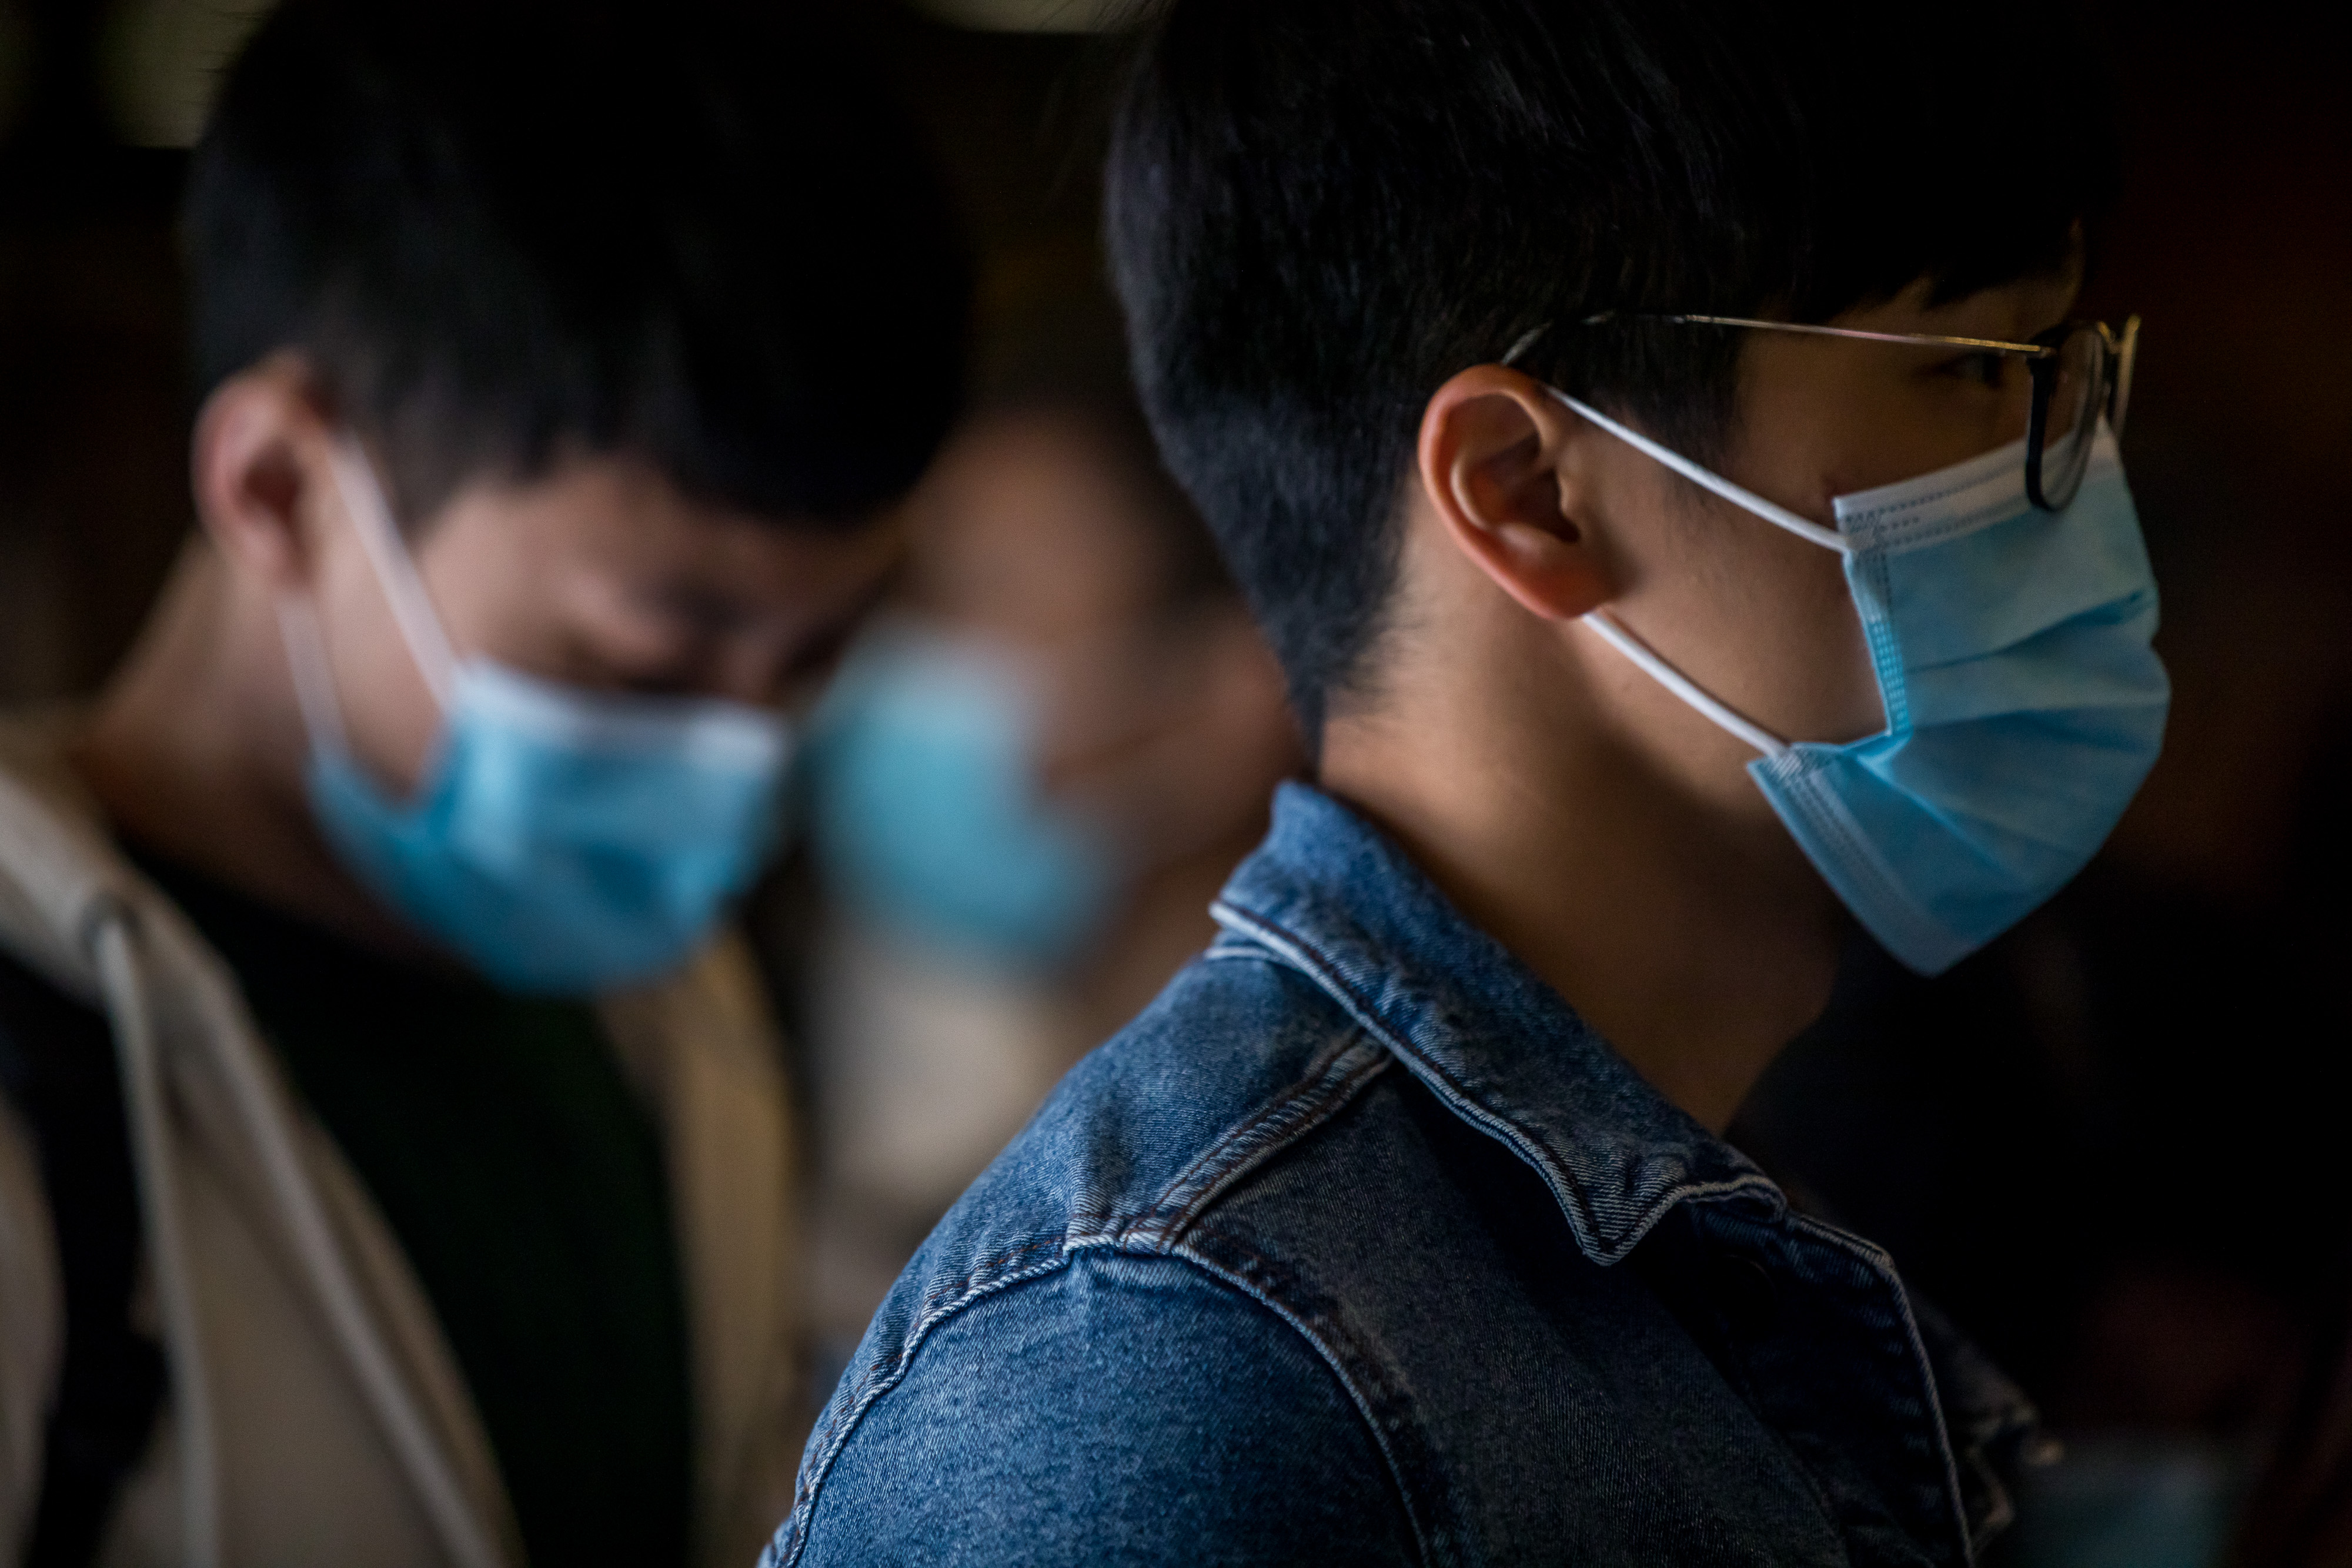 Medical workers wearing protective masks gather during a protest in Hong Kong, on Feb. 4, 2020.